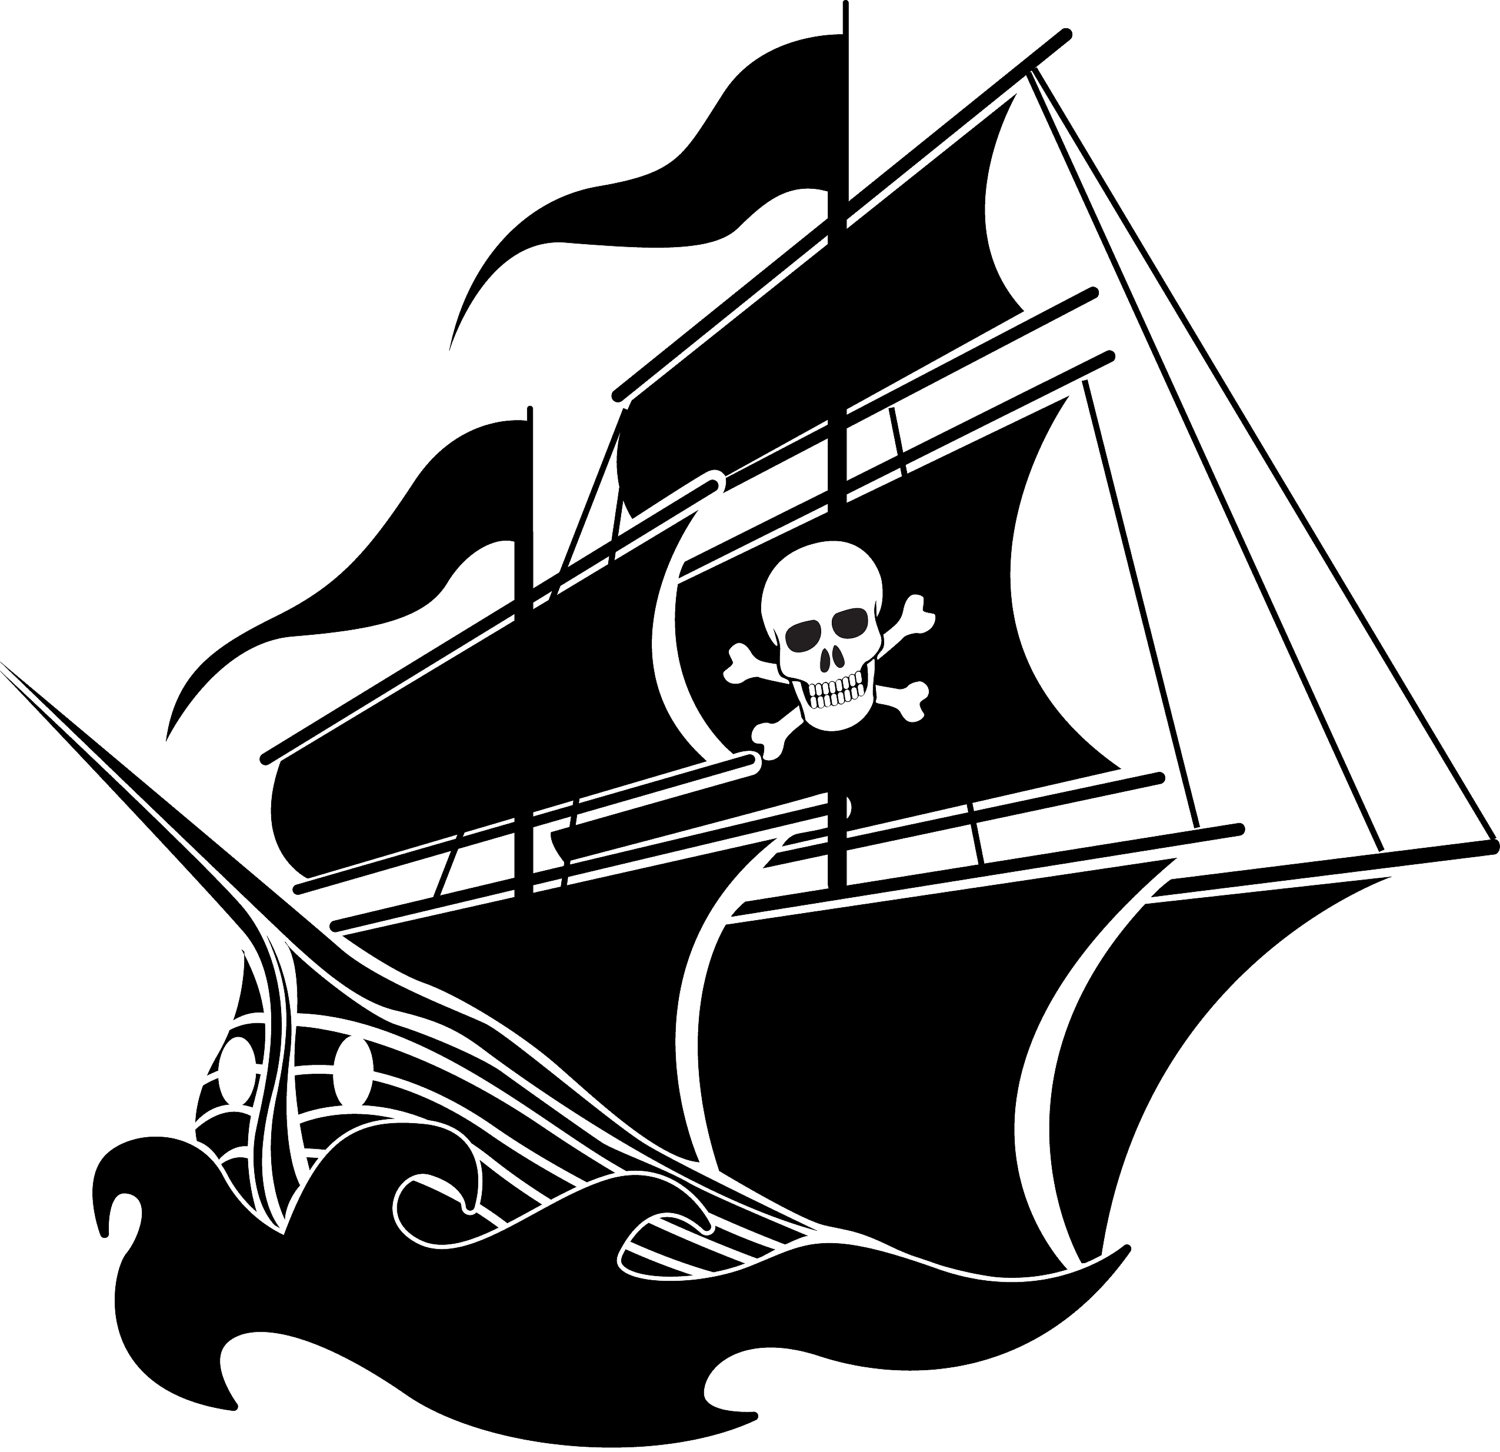 Pirate Ship Silhouette Clip Art.